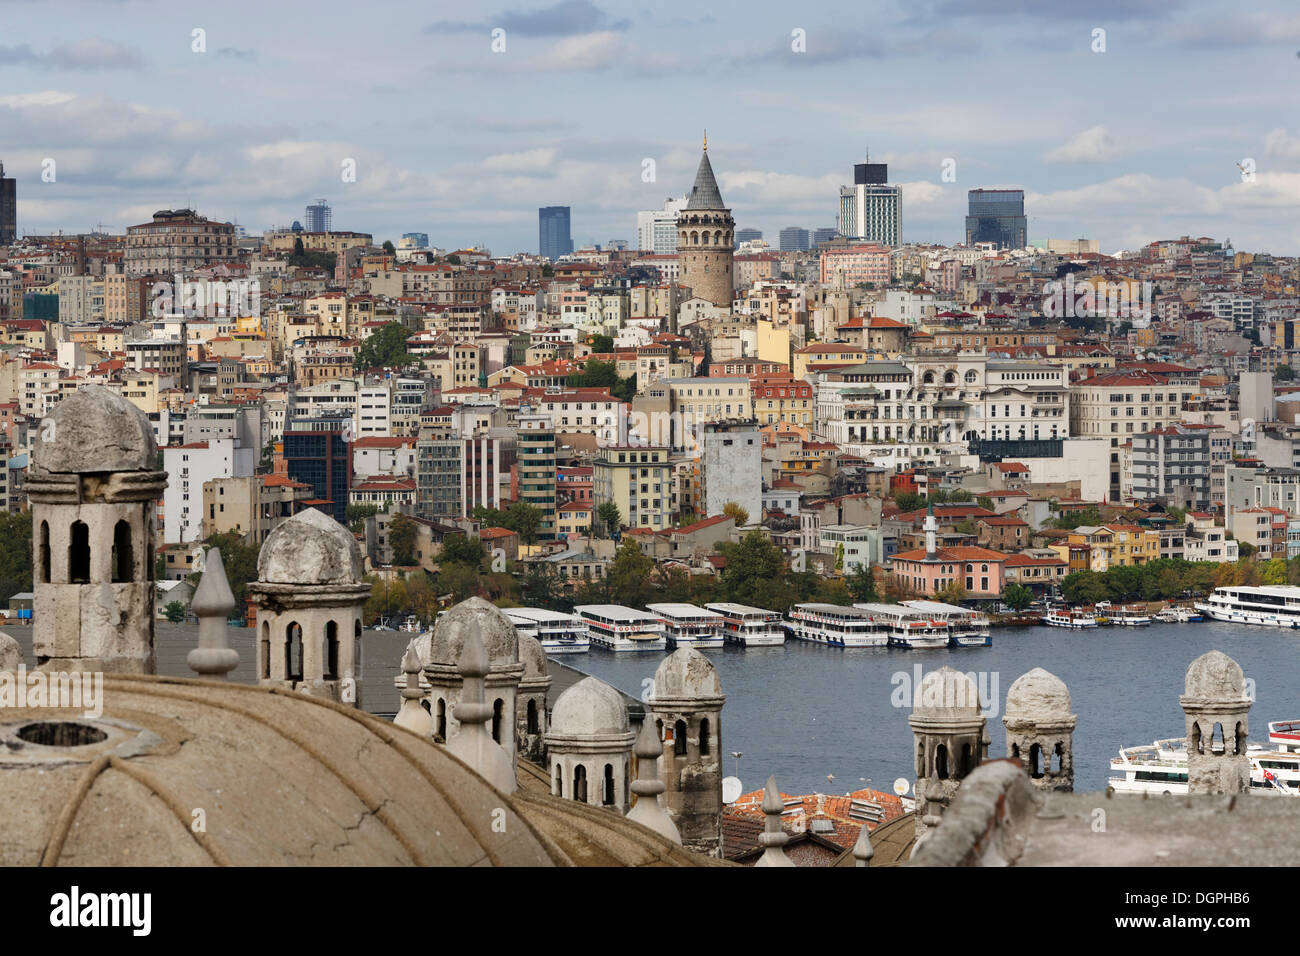 View from the Süleymaniye Mosque across the Golden Horn to Beyoğlu with the Galata Tower, Istanbul, European side - Stock Image